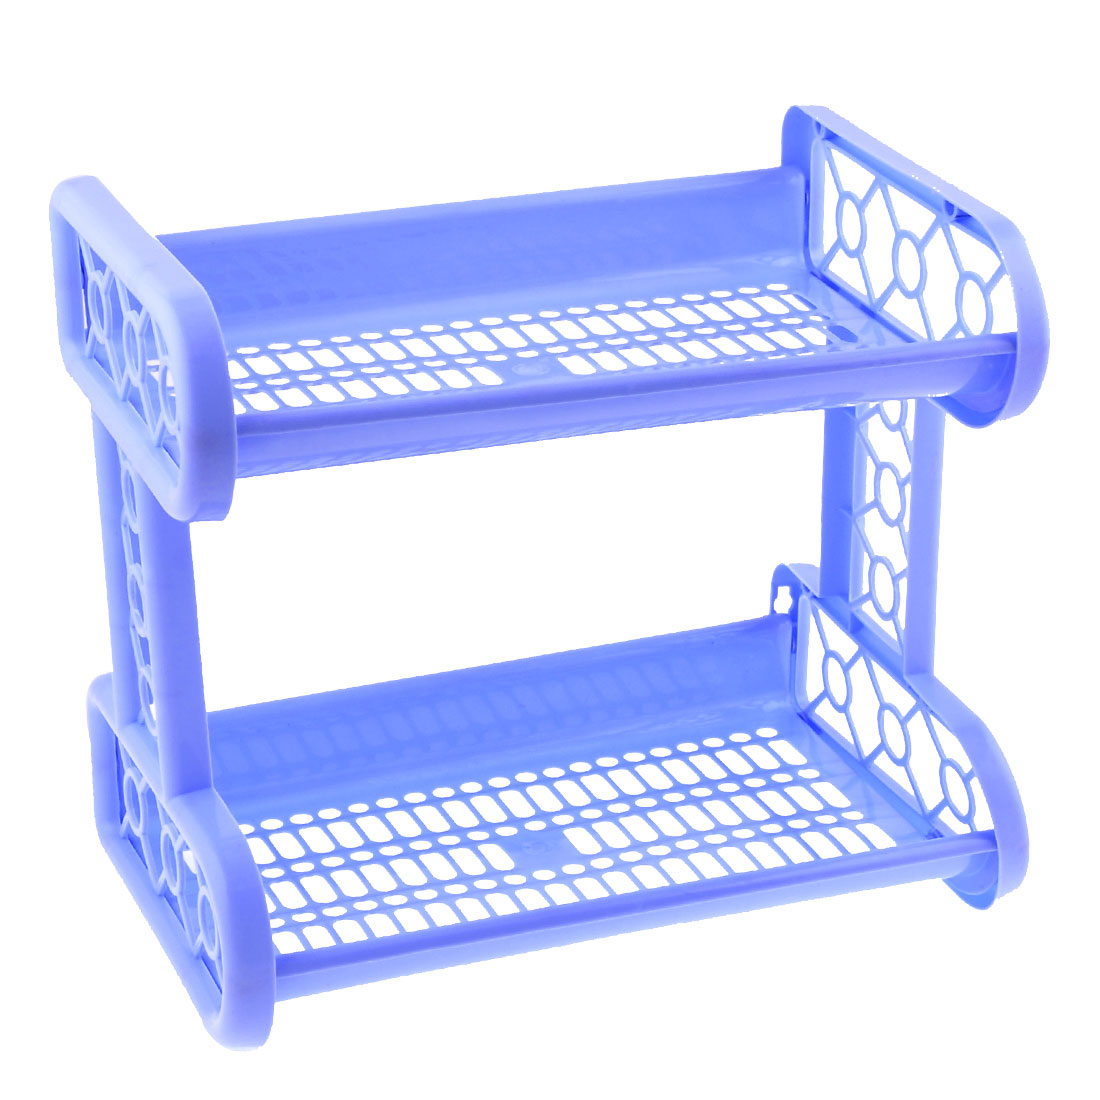 Household 25cm High Dark Blue Plastic Cut Out Dual Layers Shelf Storage Rack